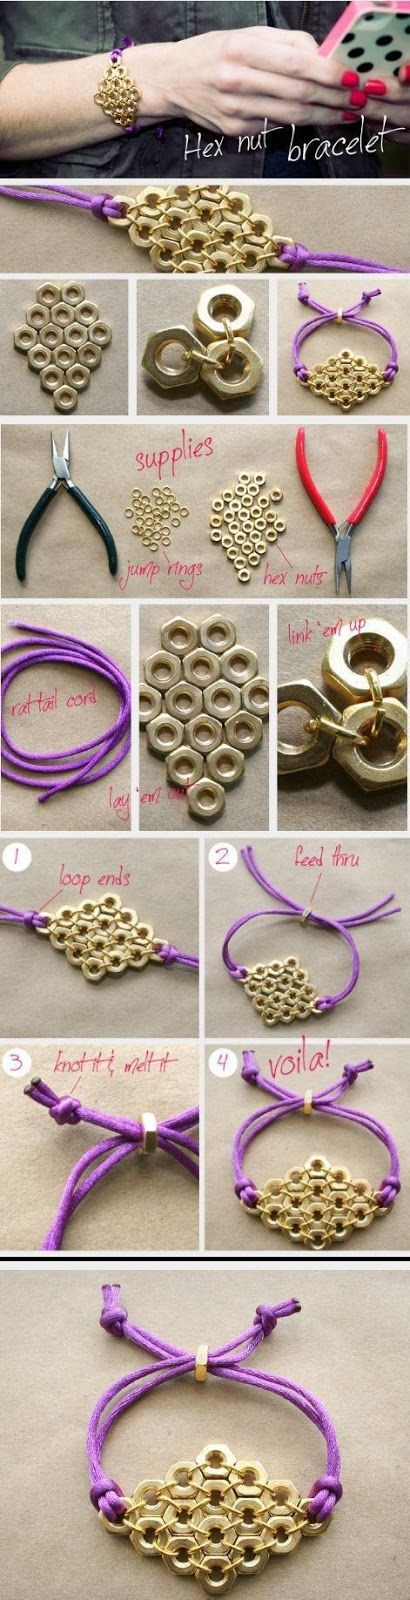 Make hex nut bracelet by your own:- For making hex nut bracelet we need... click on picture to read more